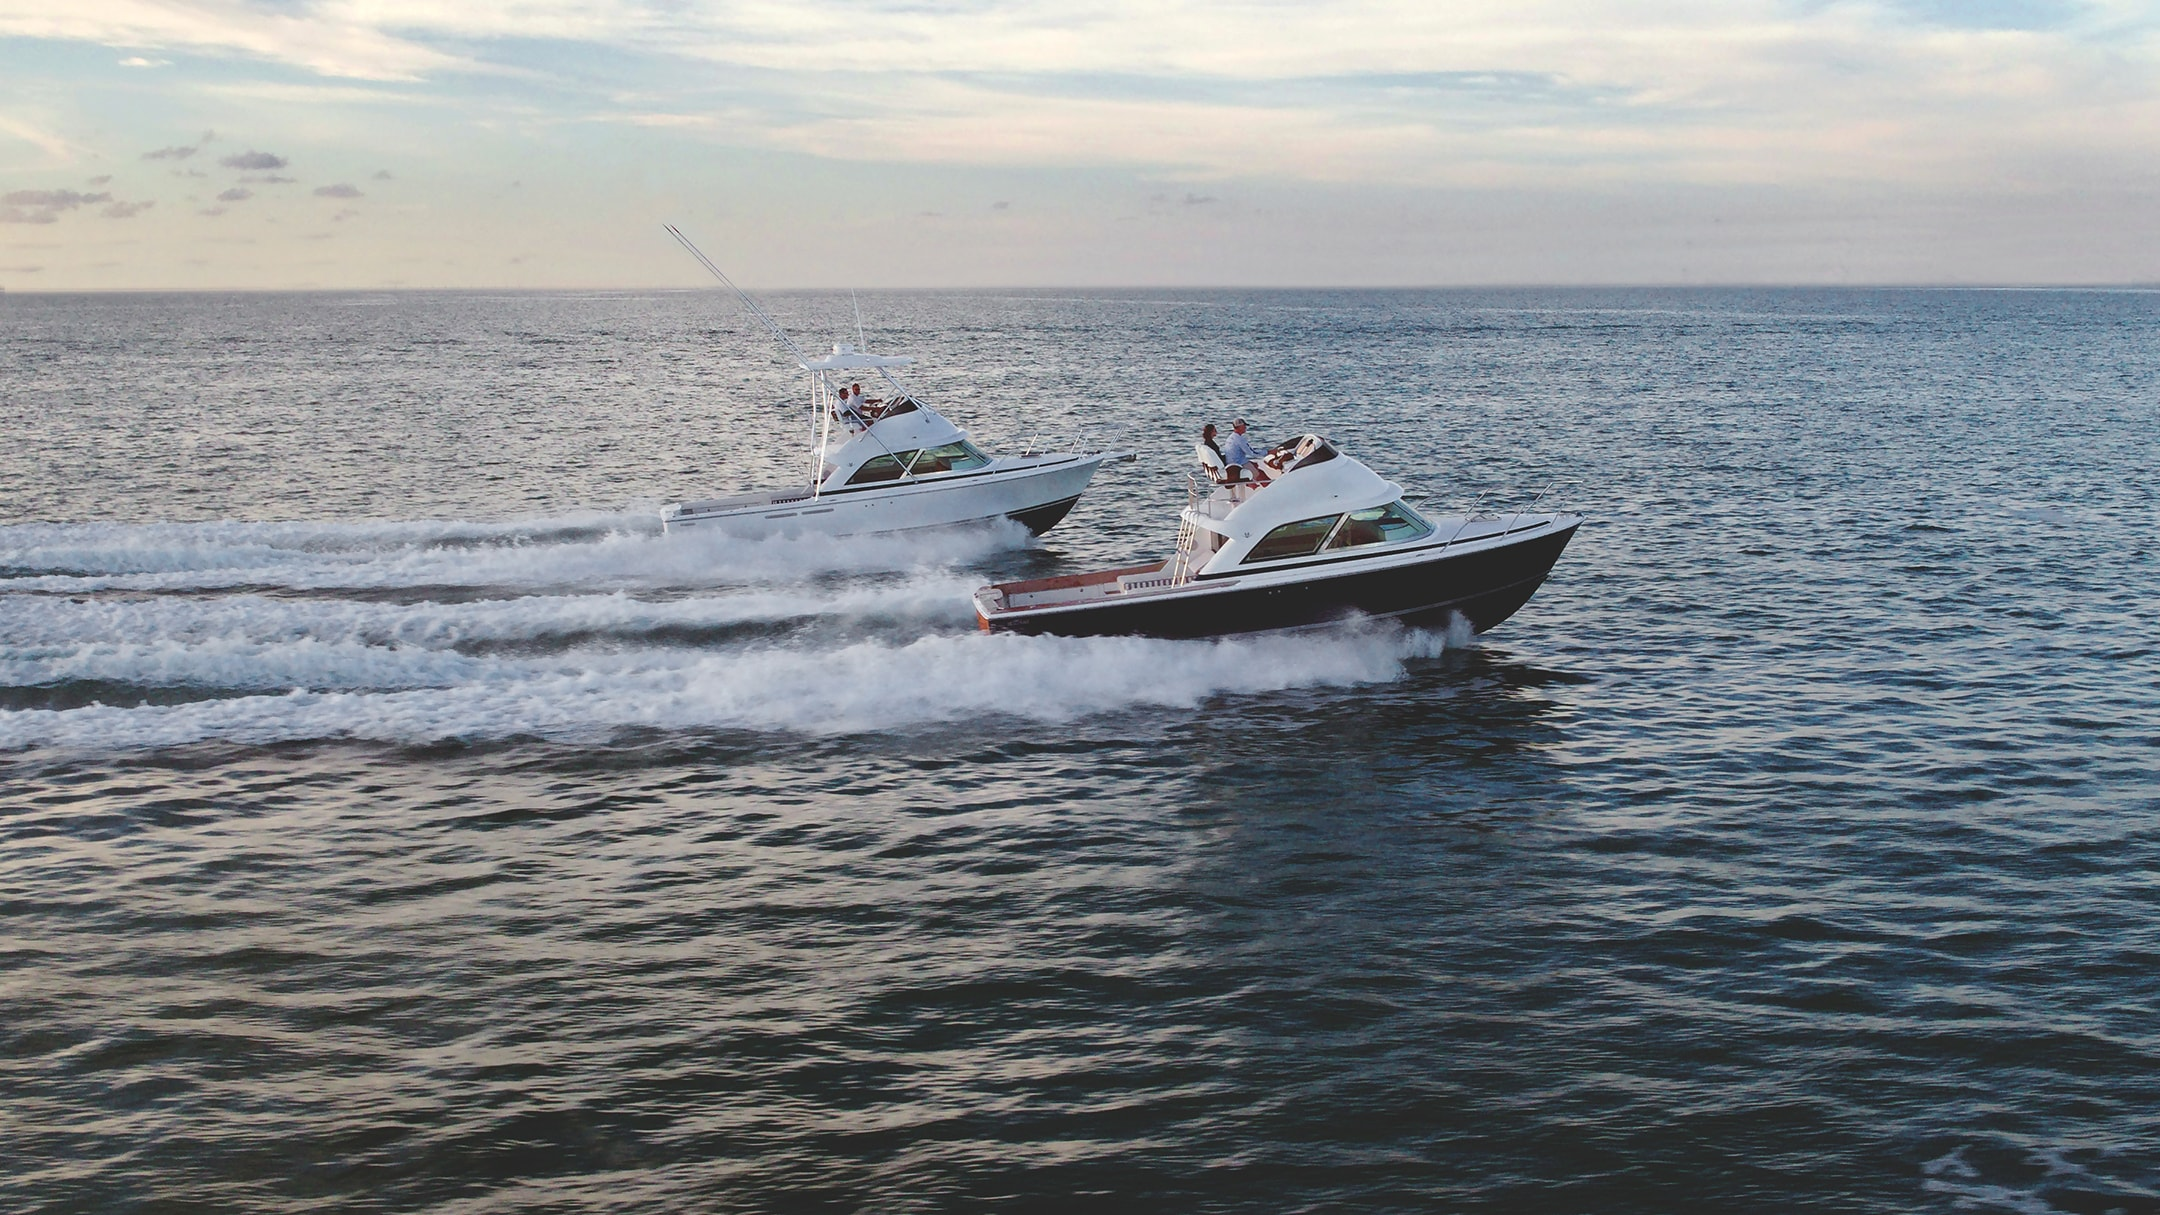 Two boats racing in the water - taken at a shoot for our yacht branding project with Bertram.